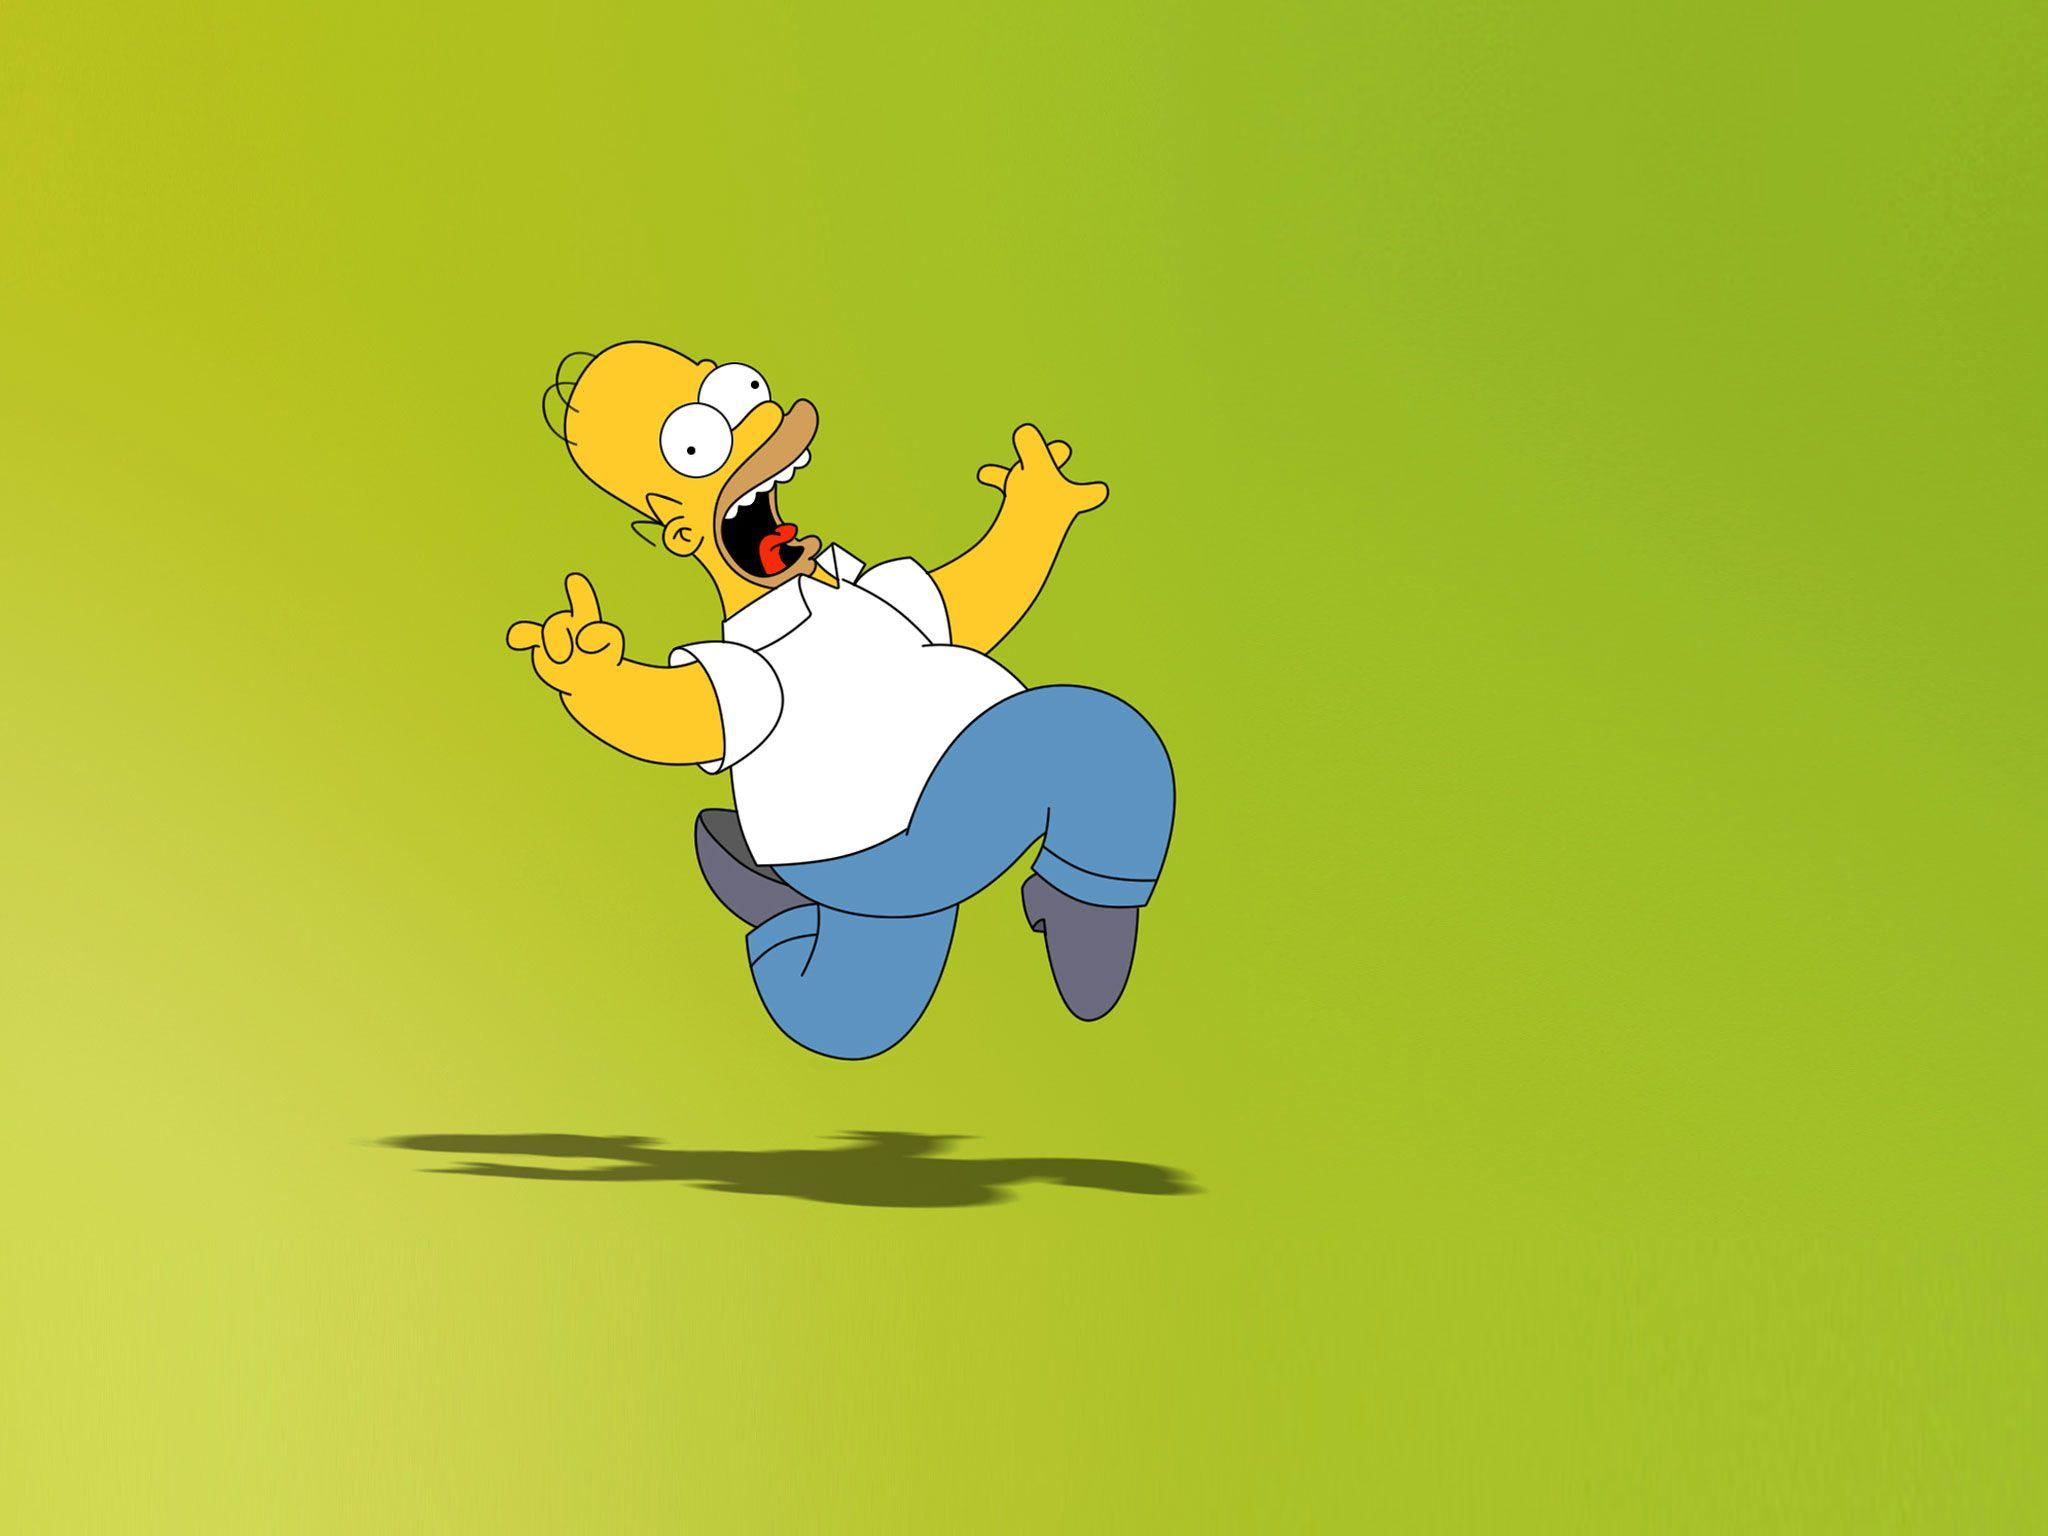 1280x720 homer simpson desktop - photo #10